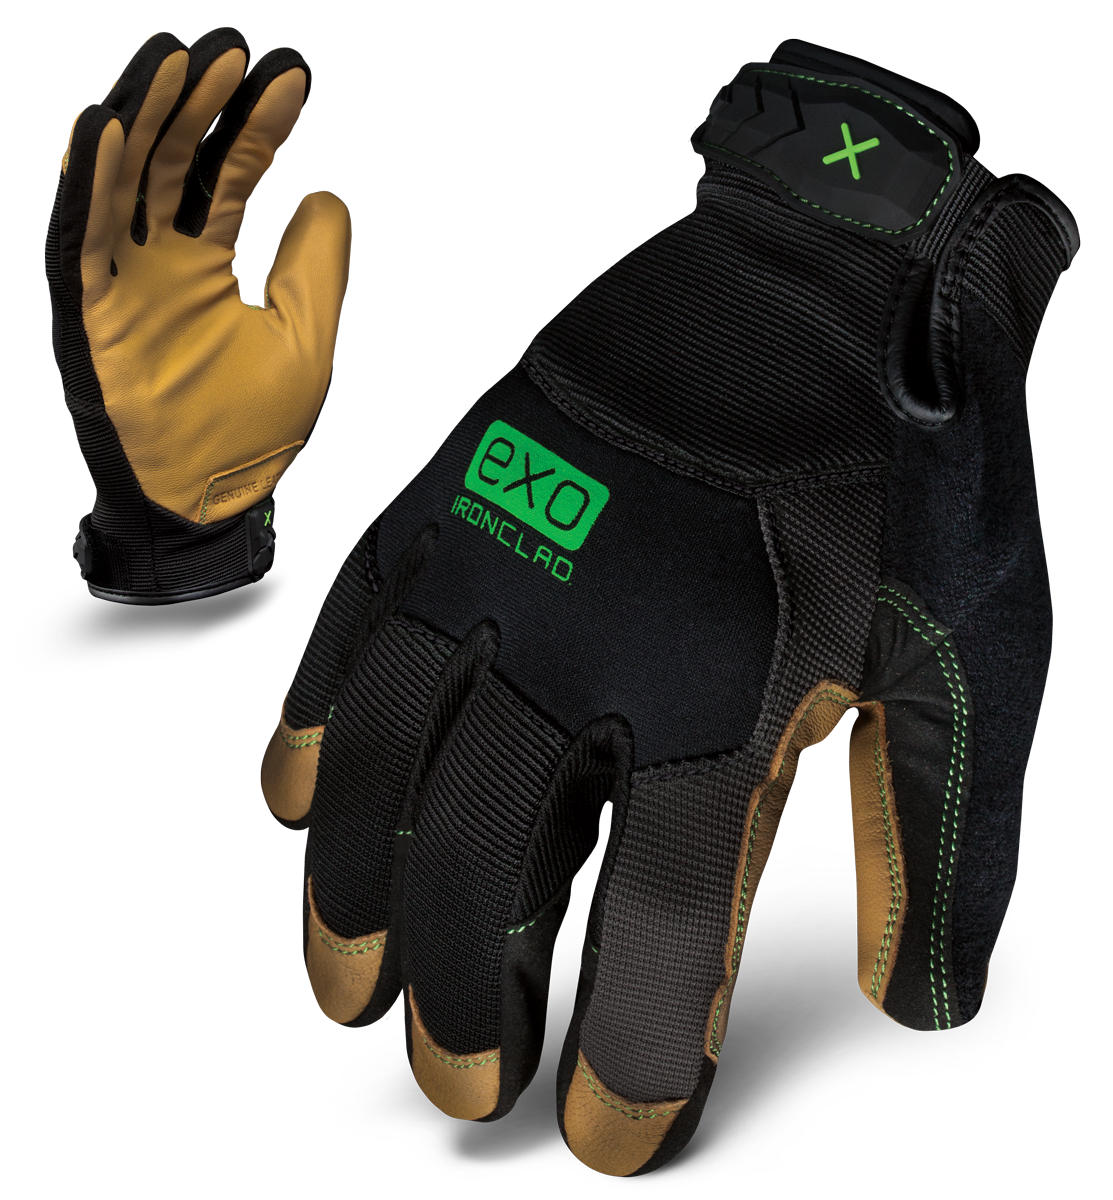 Armour Safety Products Ltd. - EXO Modern Leather